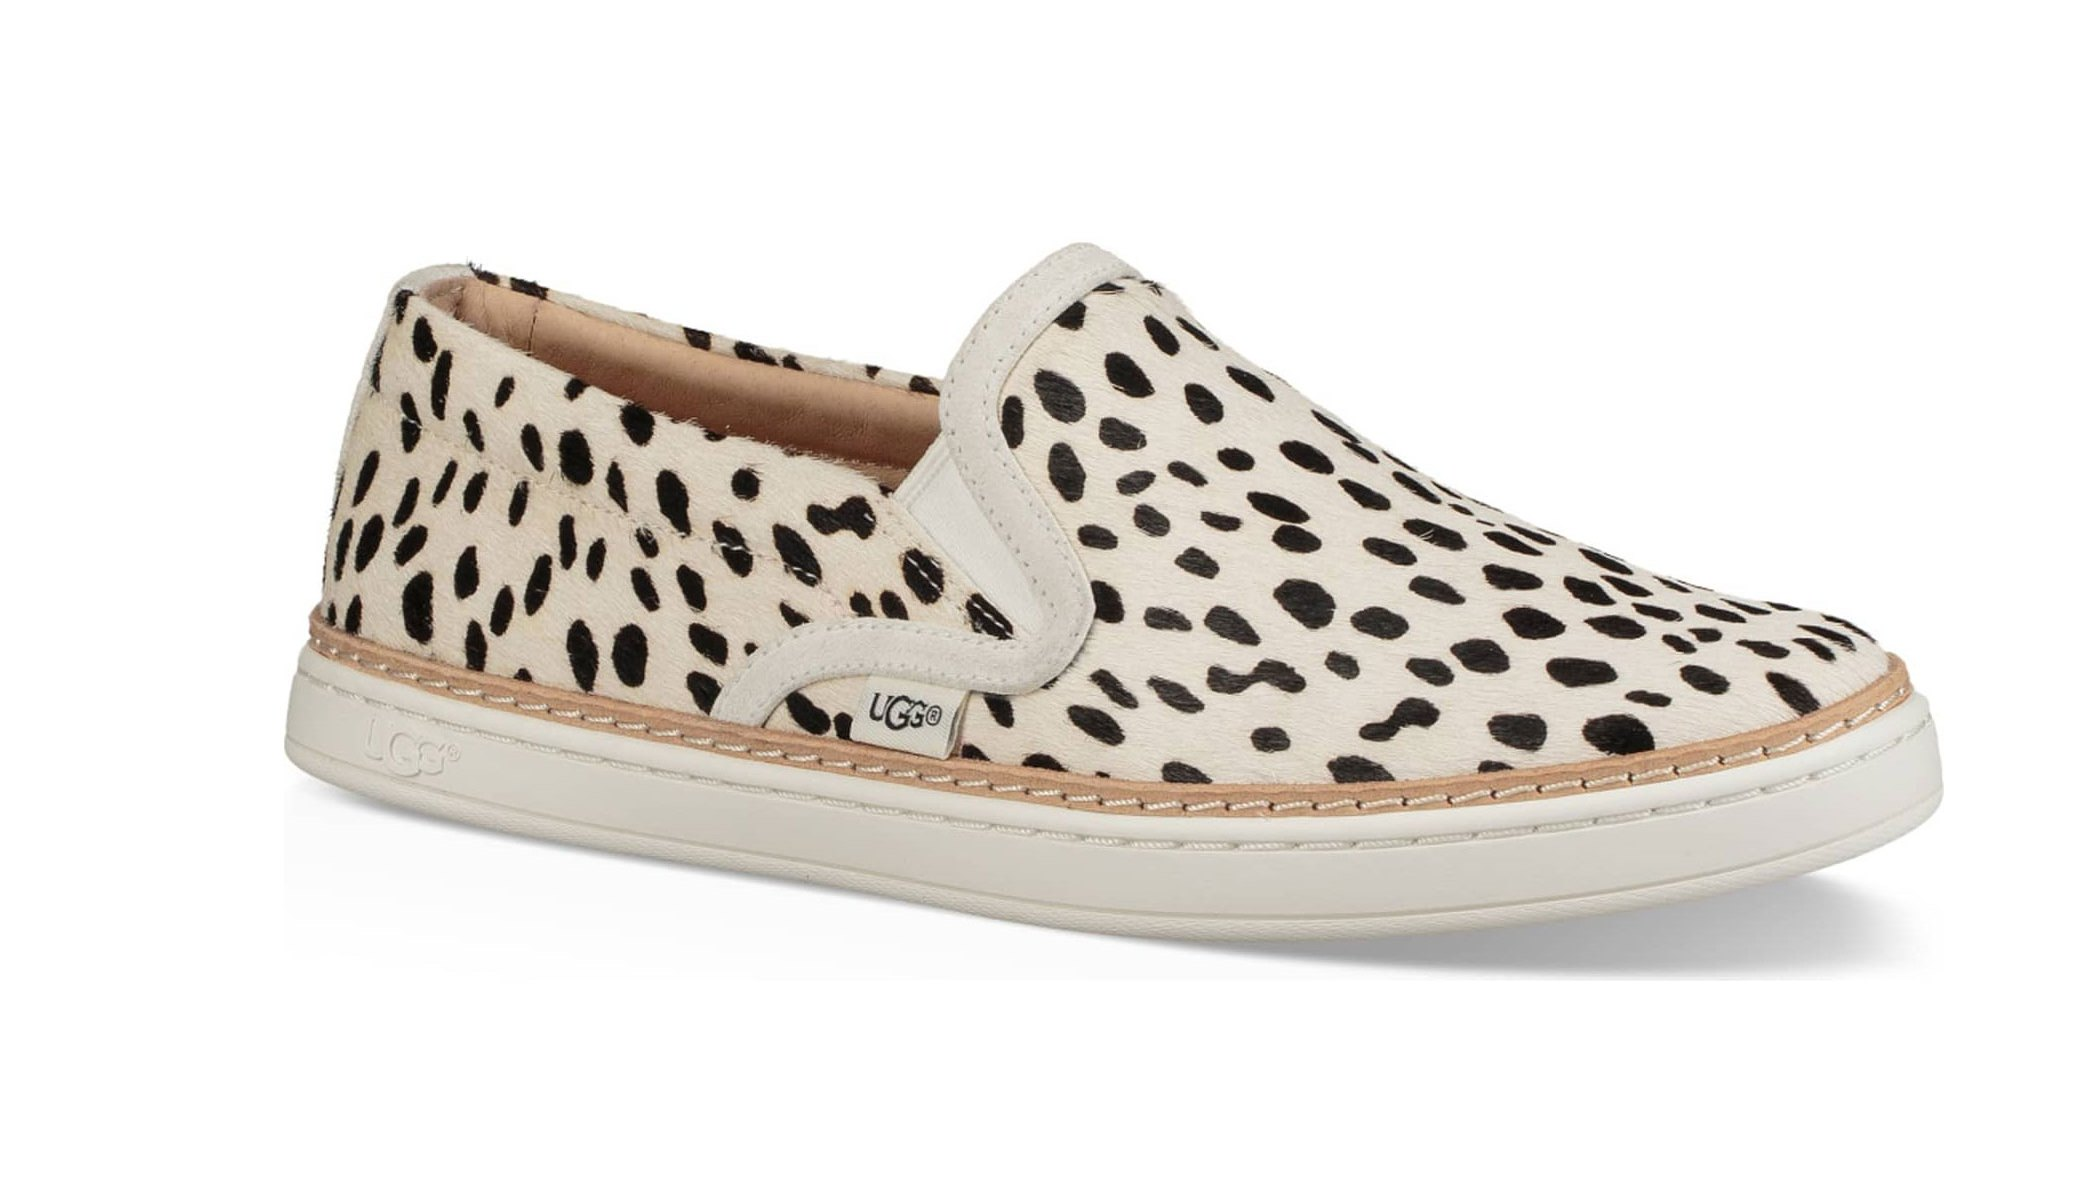 UGG-Soleda-Genuine-Calf-Hair-Slip-On-Sneaker